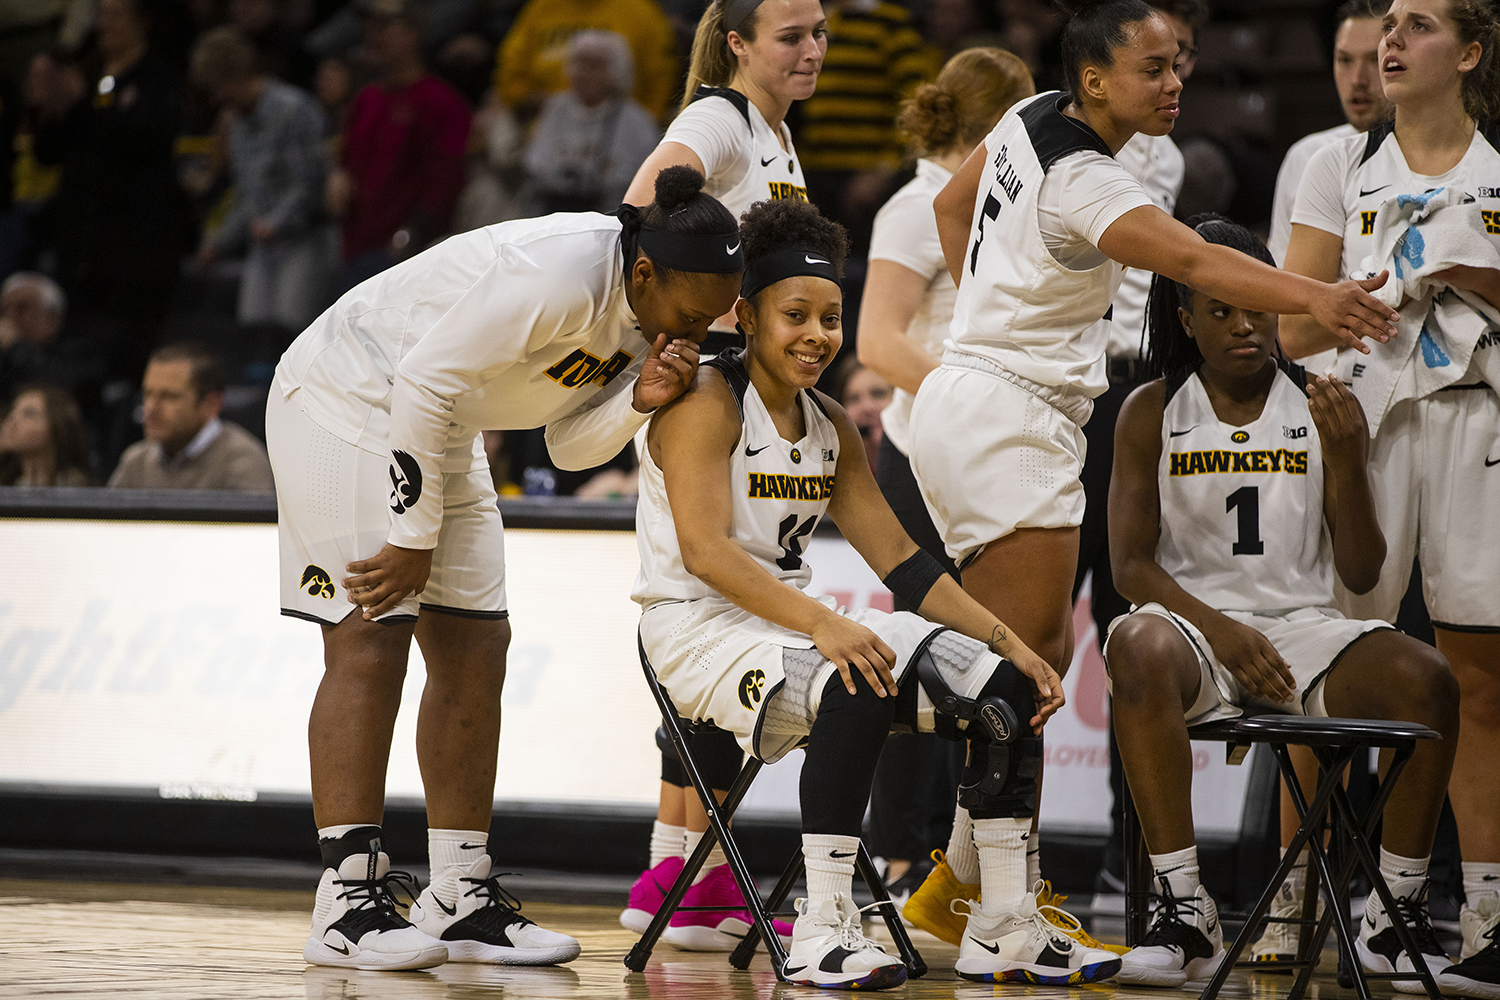 Iowa+guard+Tania+Davis+and+guard+Zion+Sanders+laugh+during+the+Iowa%2FIllinois+women%27s+basketball+game+at+Carver-Hawkeye+Arena+on+Thursday%2C+February+14%2C+2019.+The+Hawkeyes+defeated+the+Fighting+Illini%2C+88-66.+